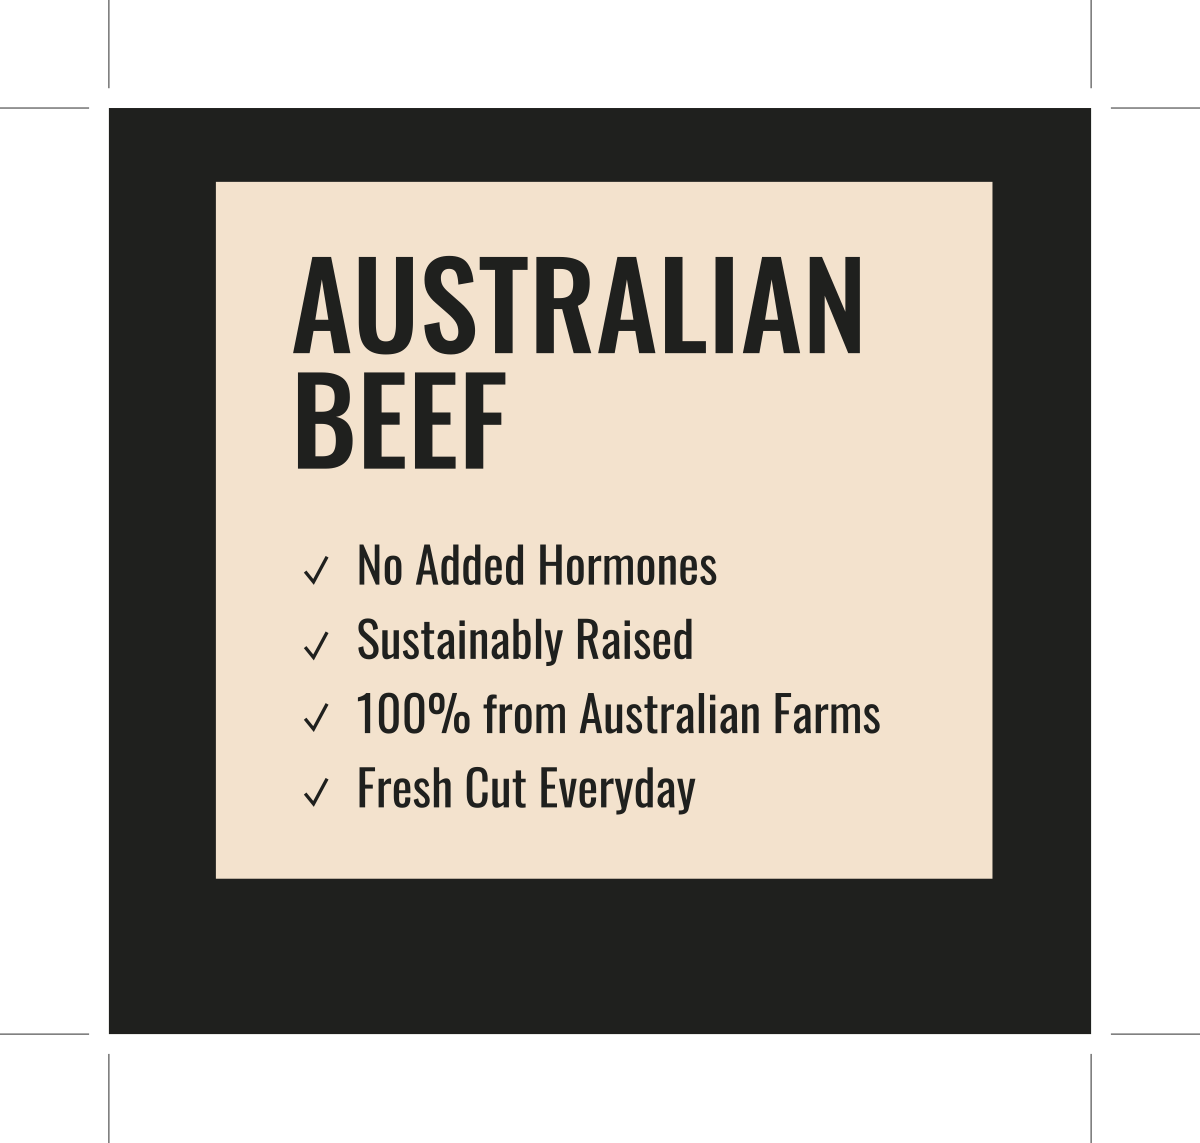 Sticker for Beef